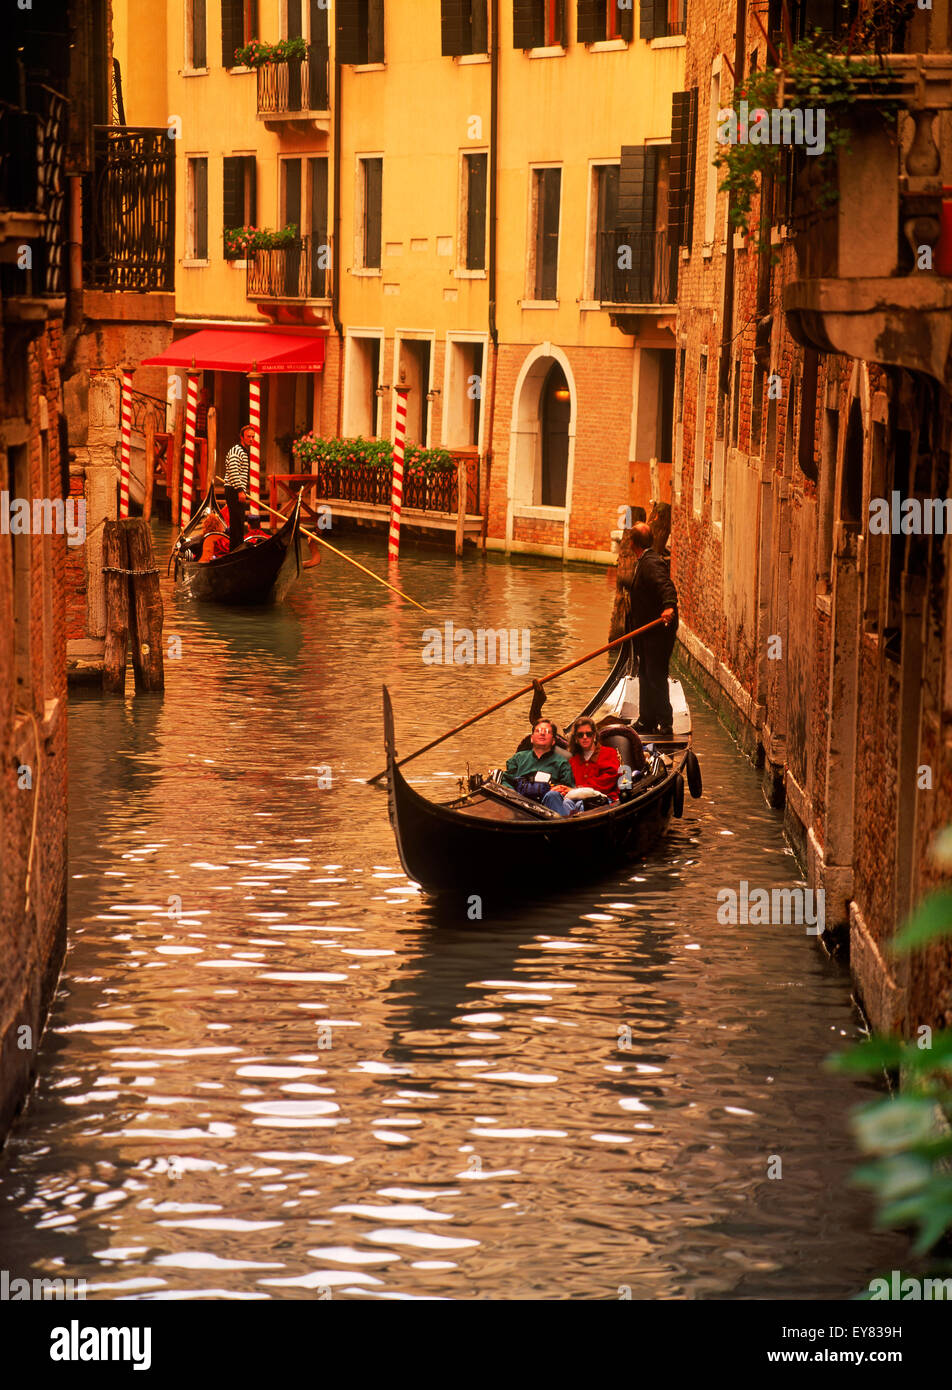 Gondolas filled with tourists passing on narrow canals in Venice - Stock Image